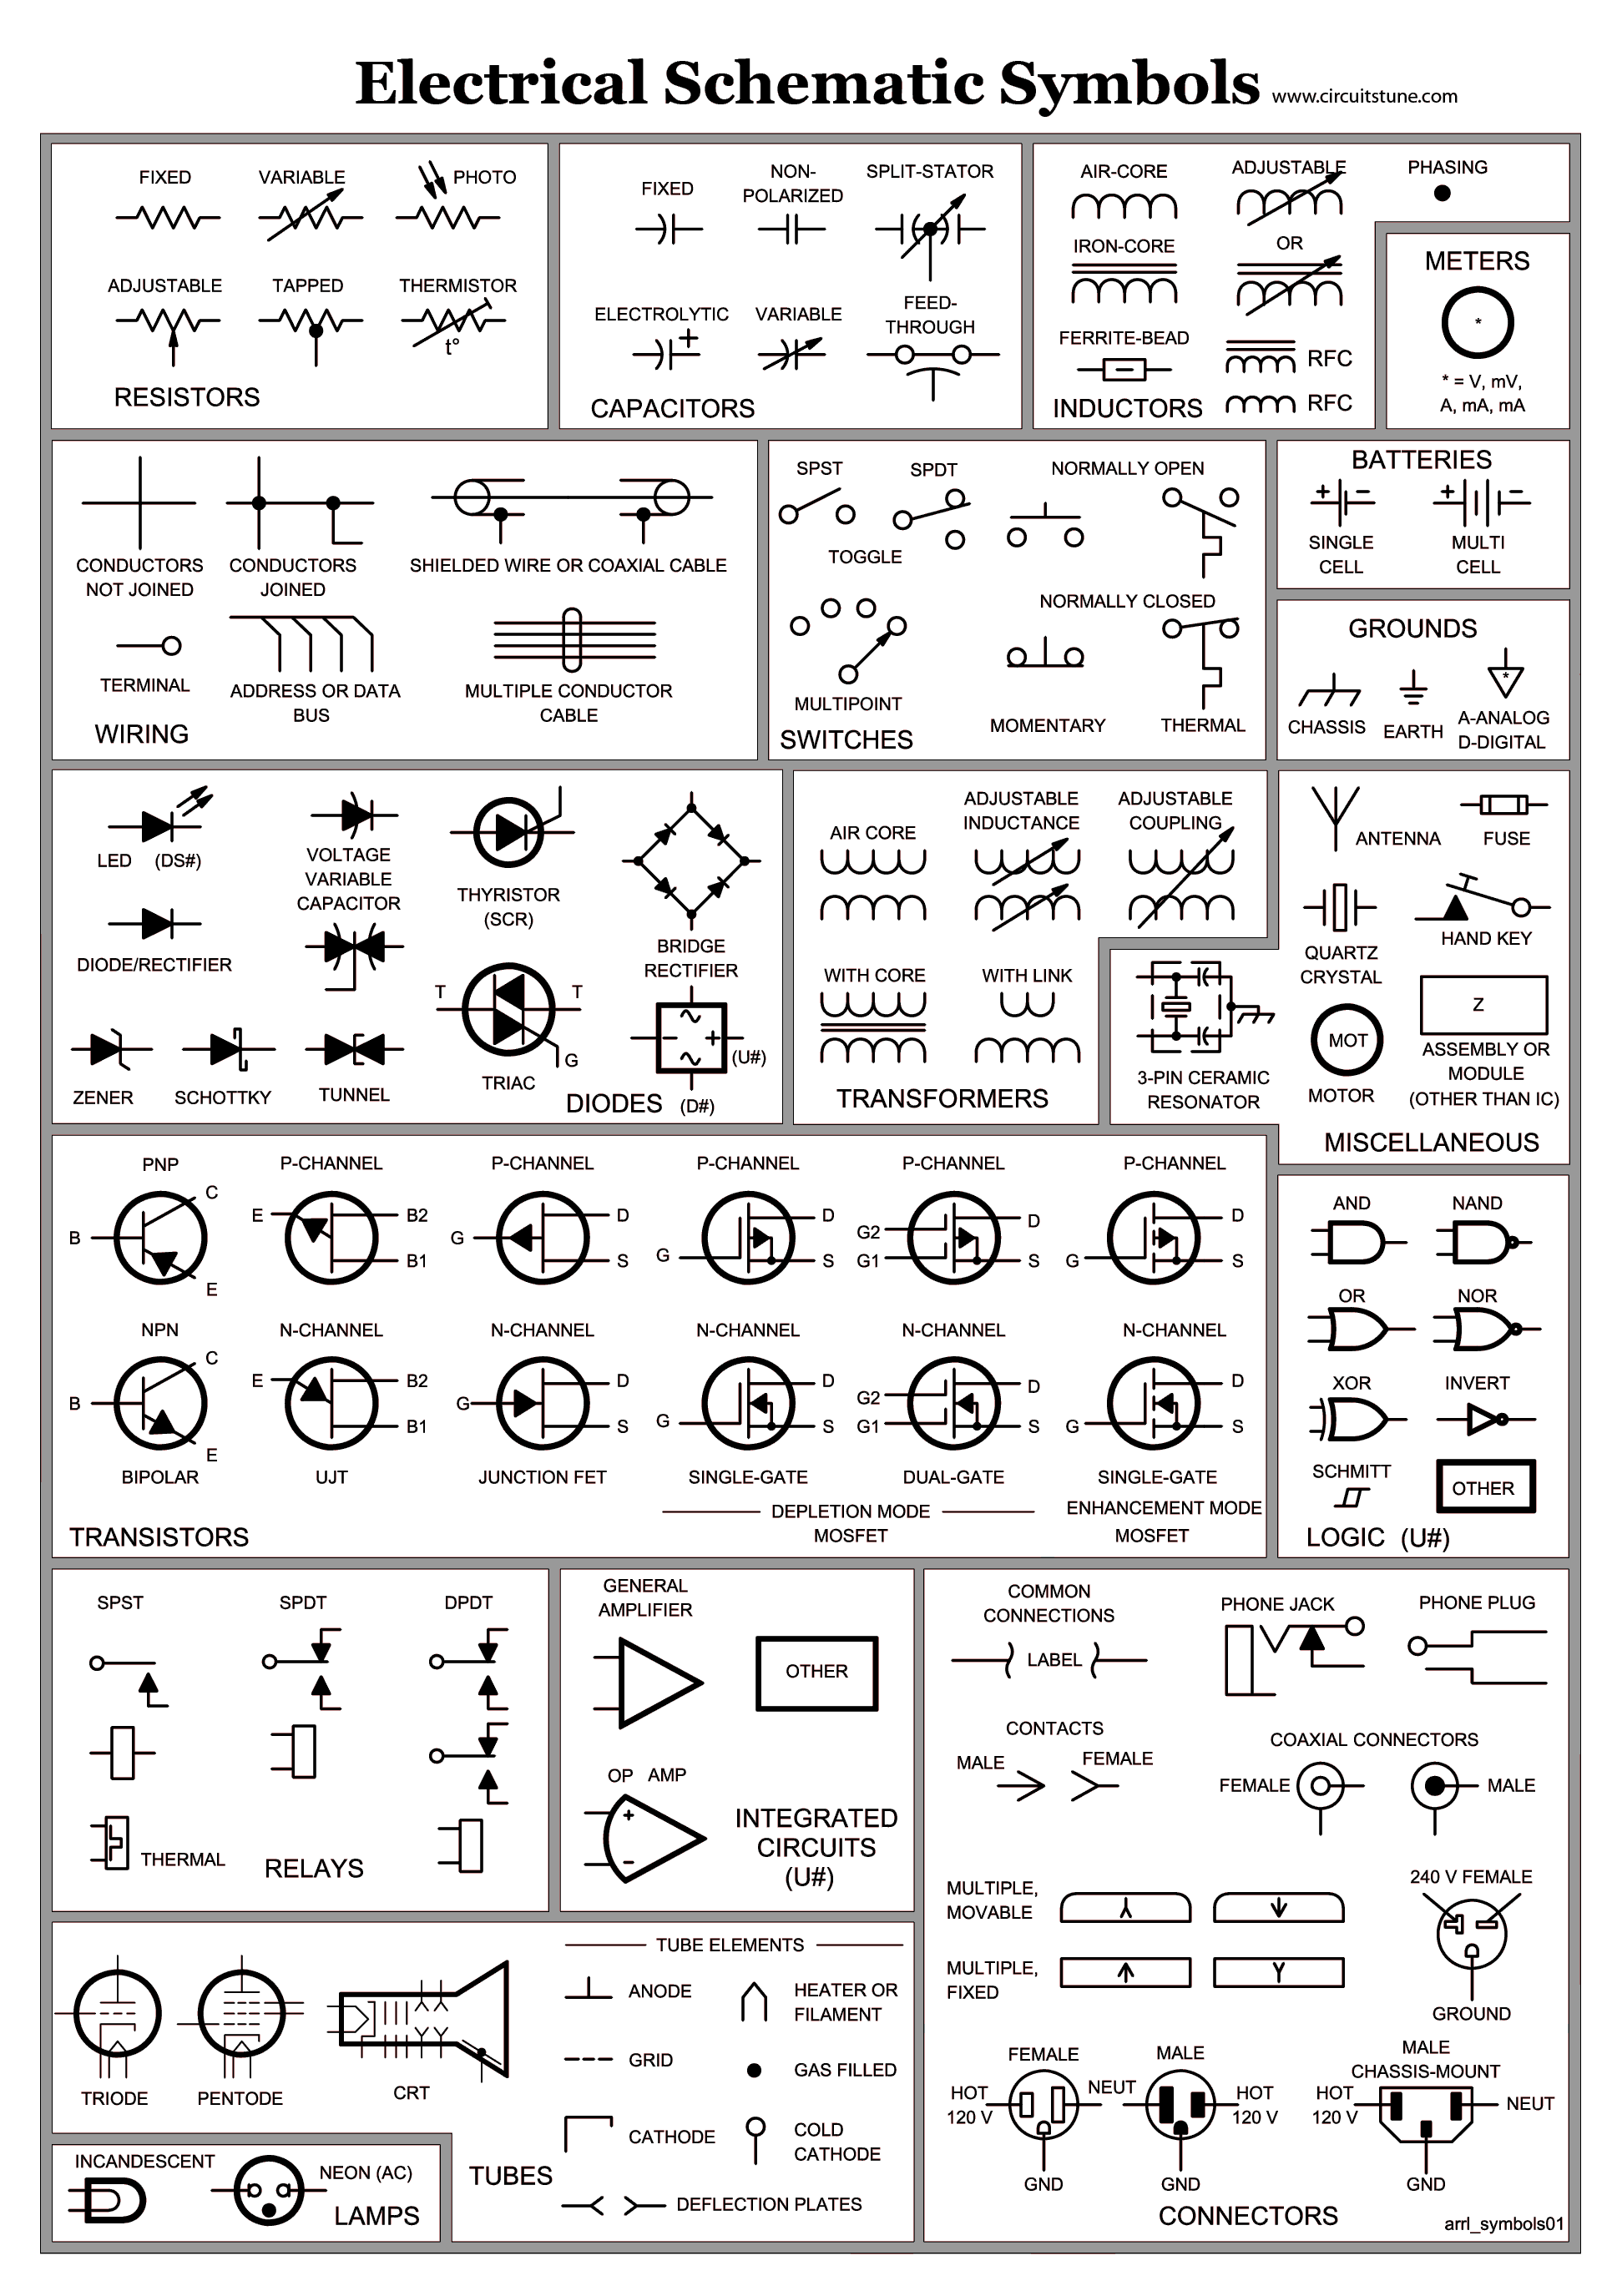 electrical schematic symbols wire diagram symbols automotive wiring rh pinterest com House Electrical Schematics Electrical Schematics For Dummies